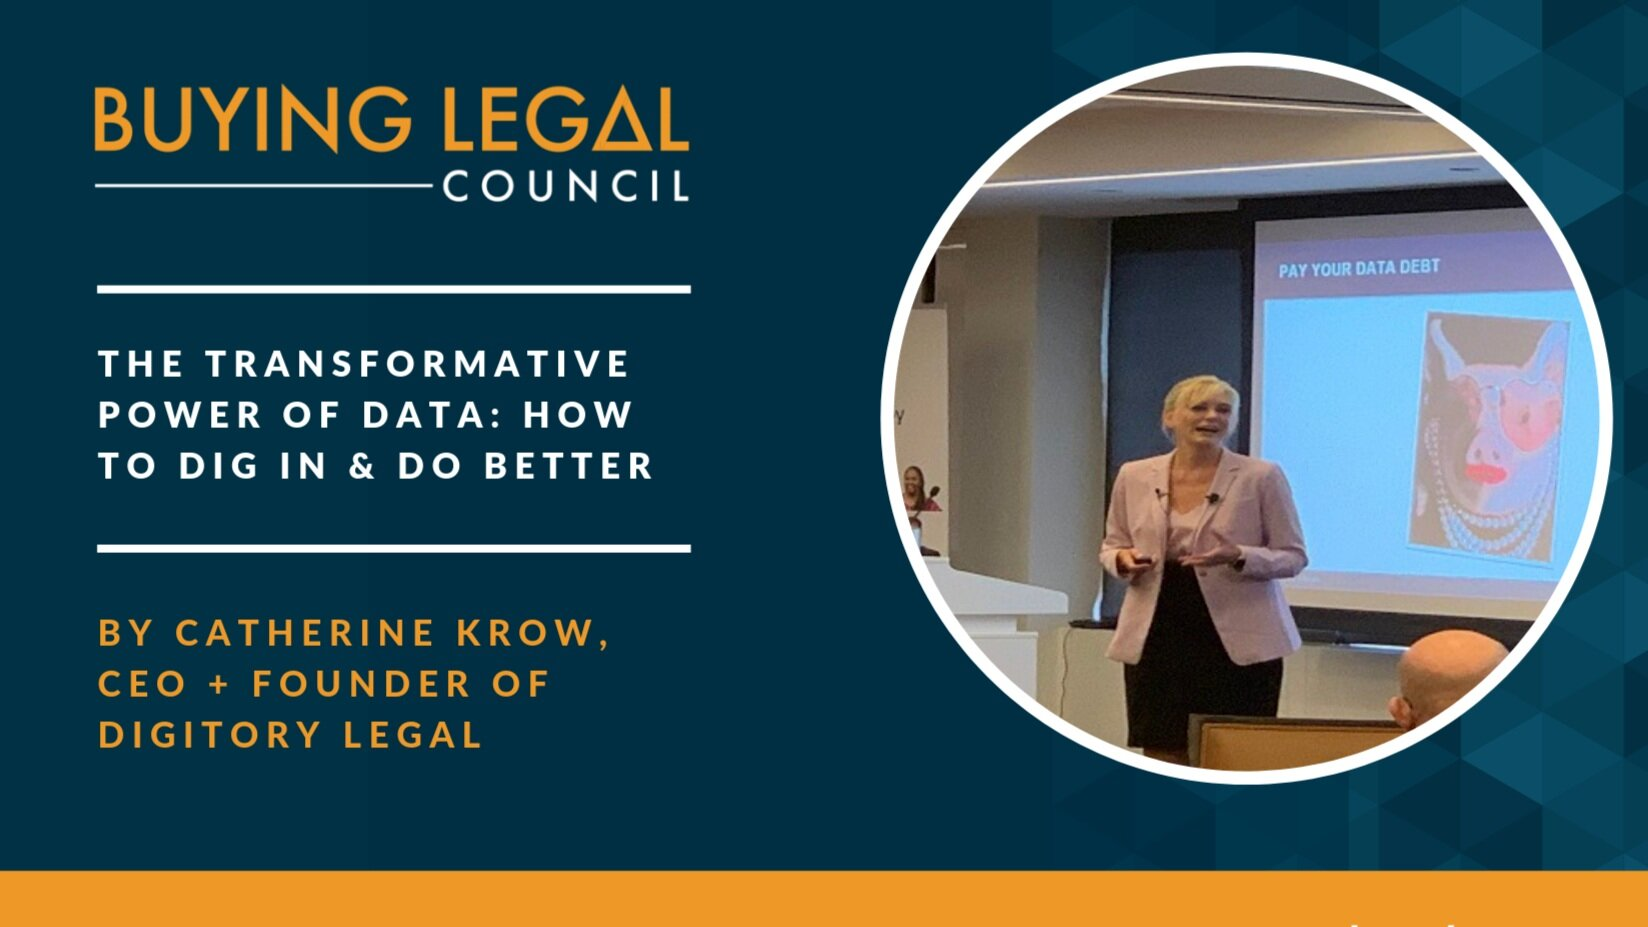 Data Deep Dive - THE TRANSFORMATIVE POWER OF DATA - BUYING LEGAL COUNCIL 2019